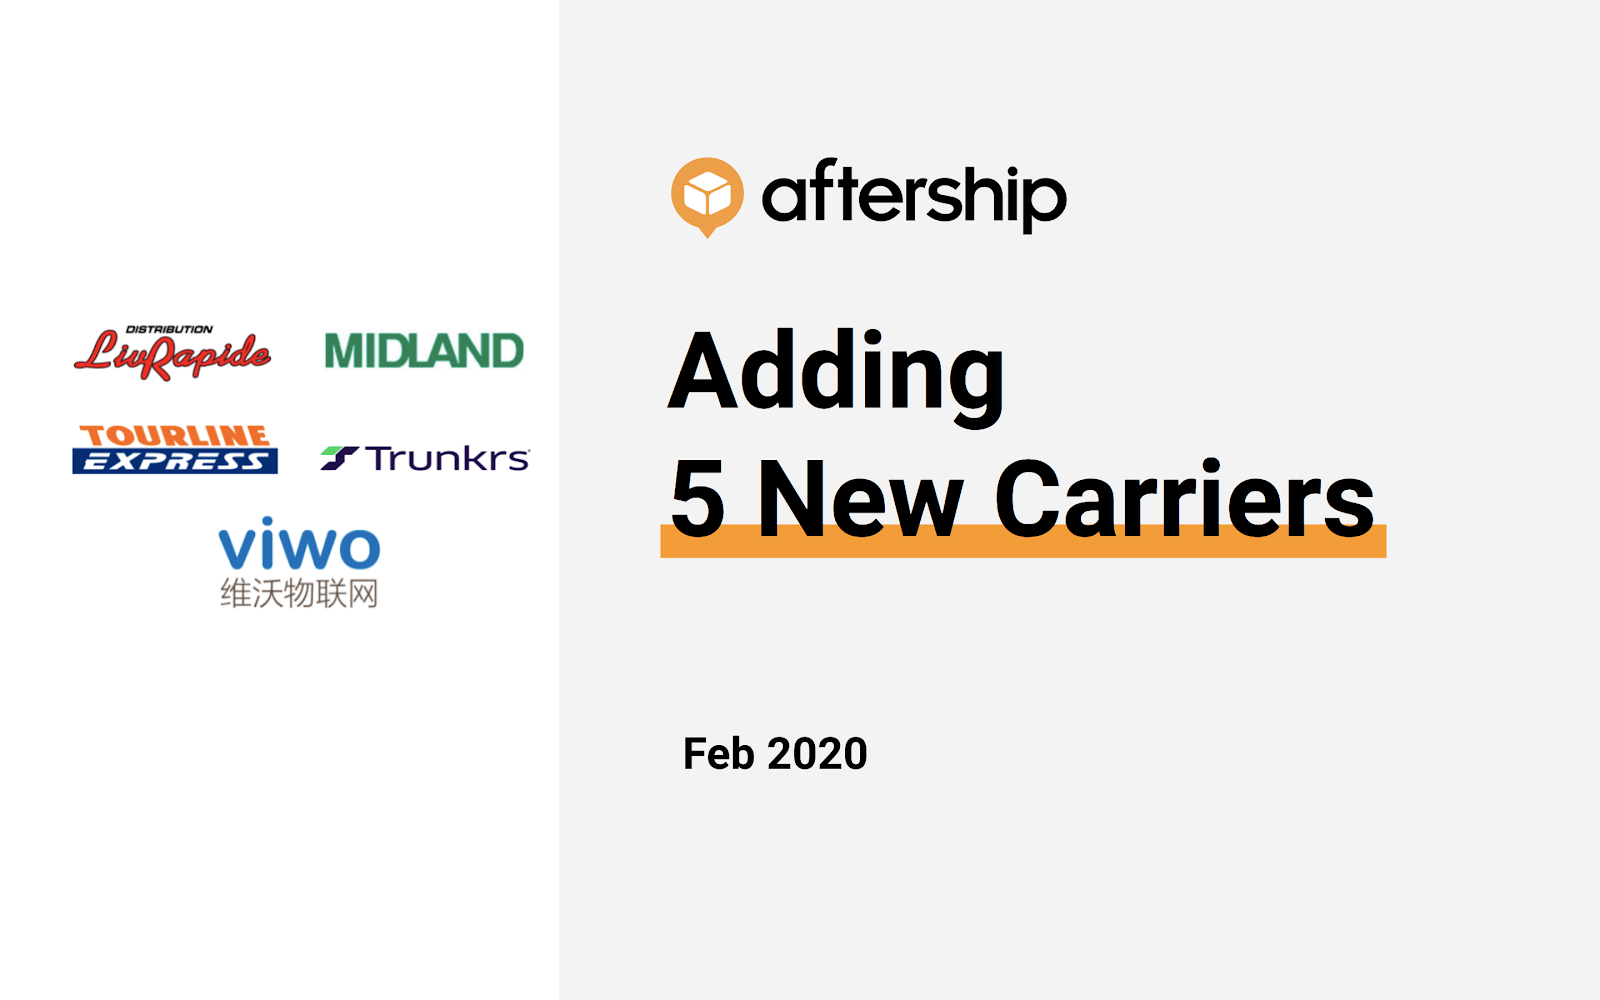 AfterShip newly supported 5 carriers